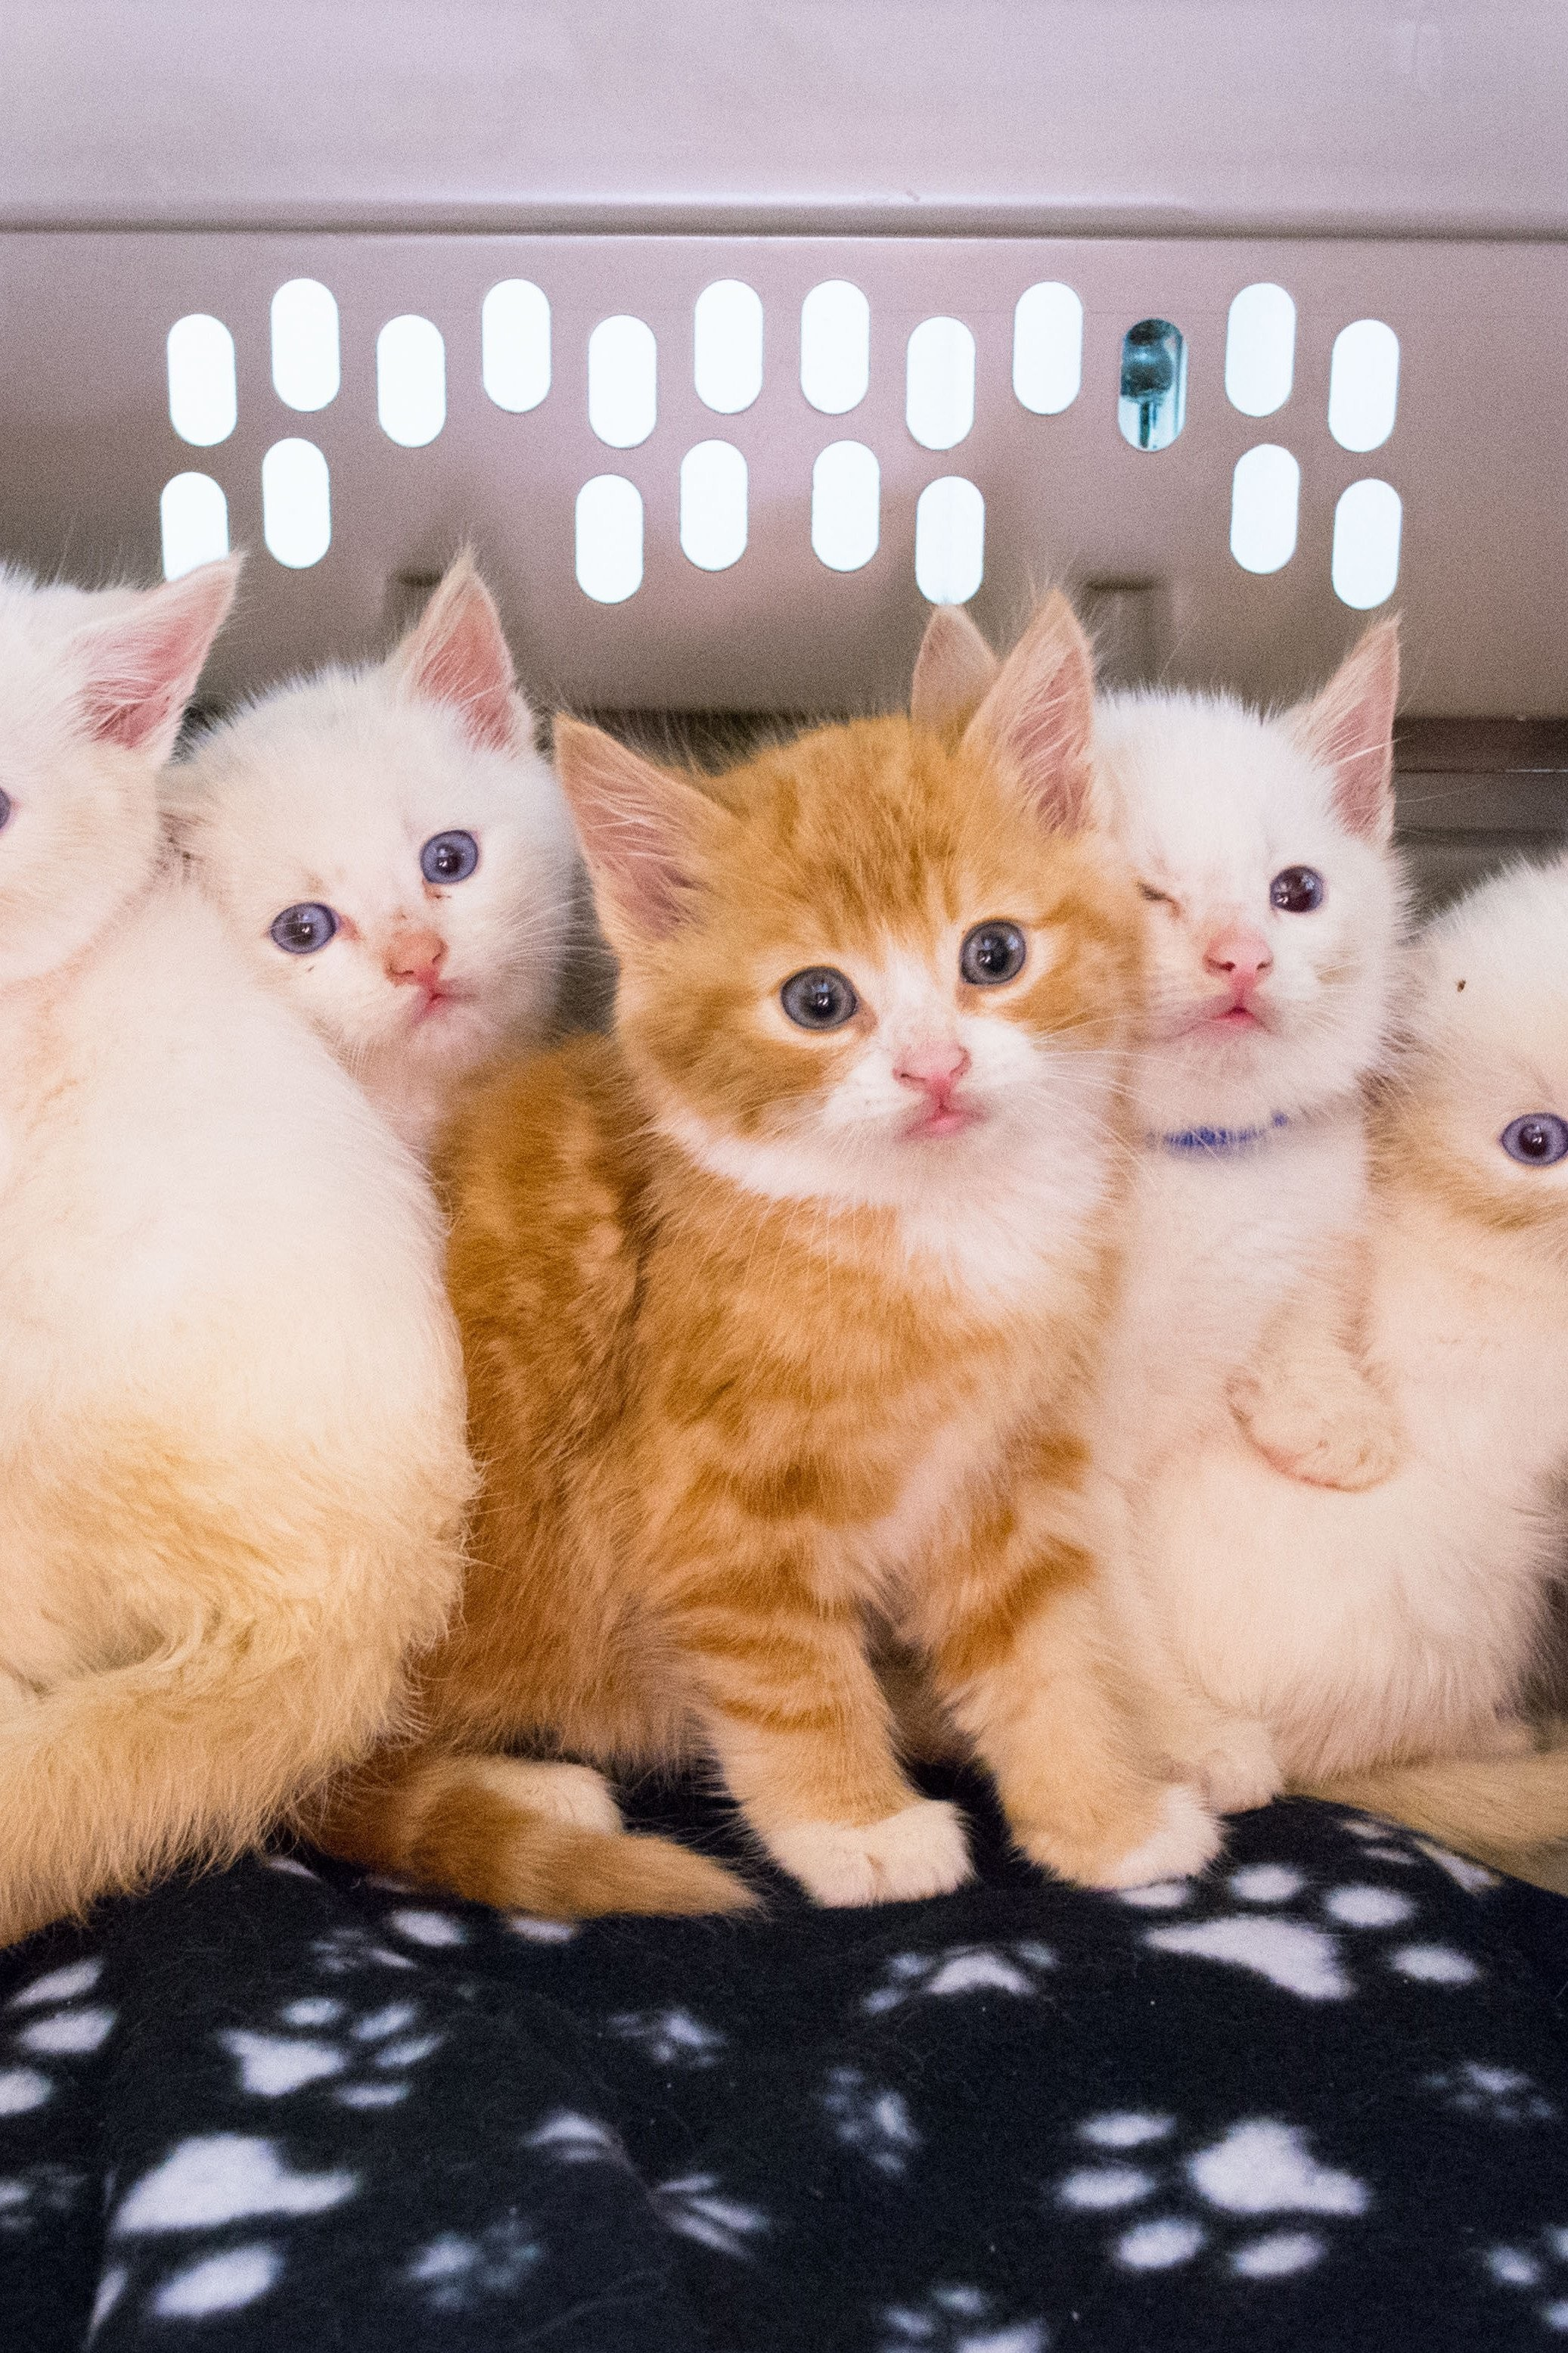 Res: 2073x3110, Kittens high definition amazing mac wallpapers cute cat baby kitten s cats